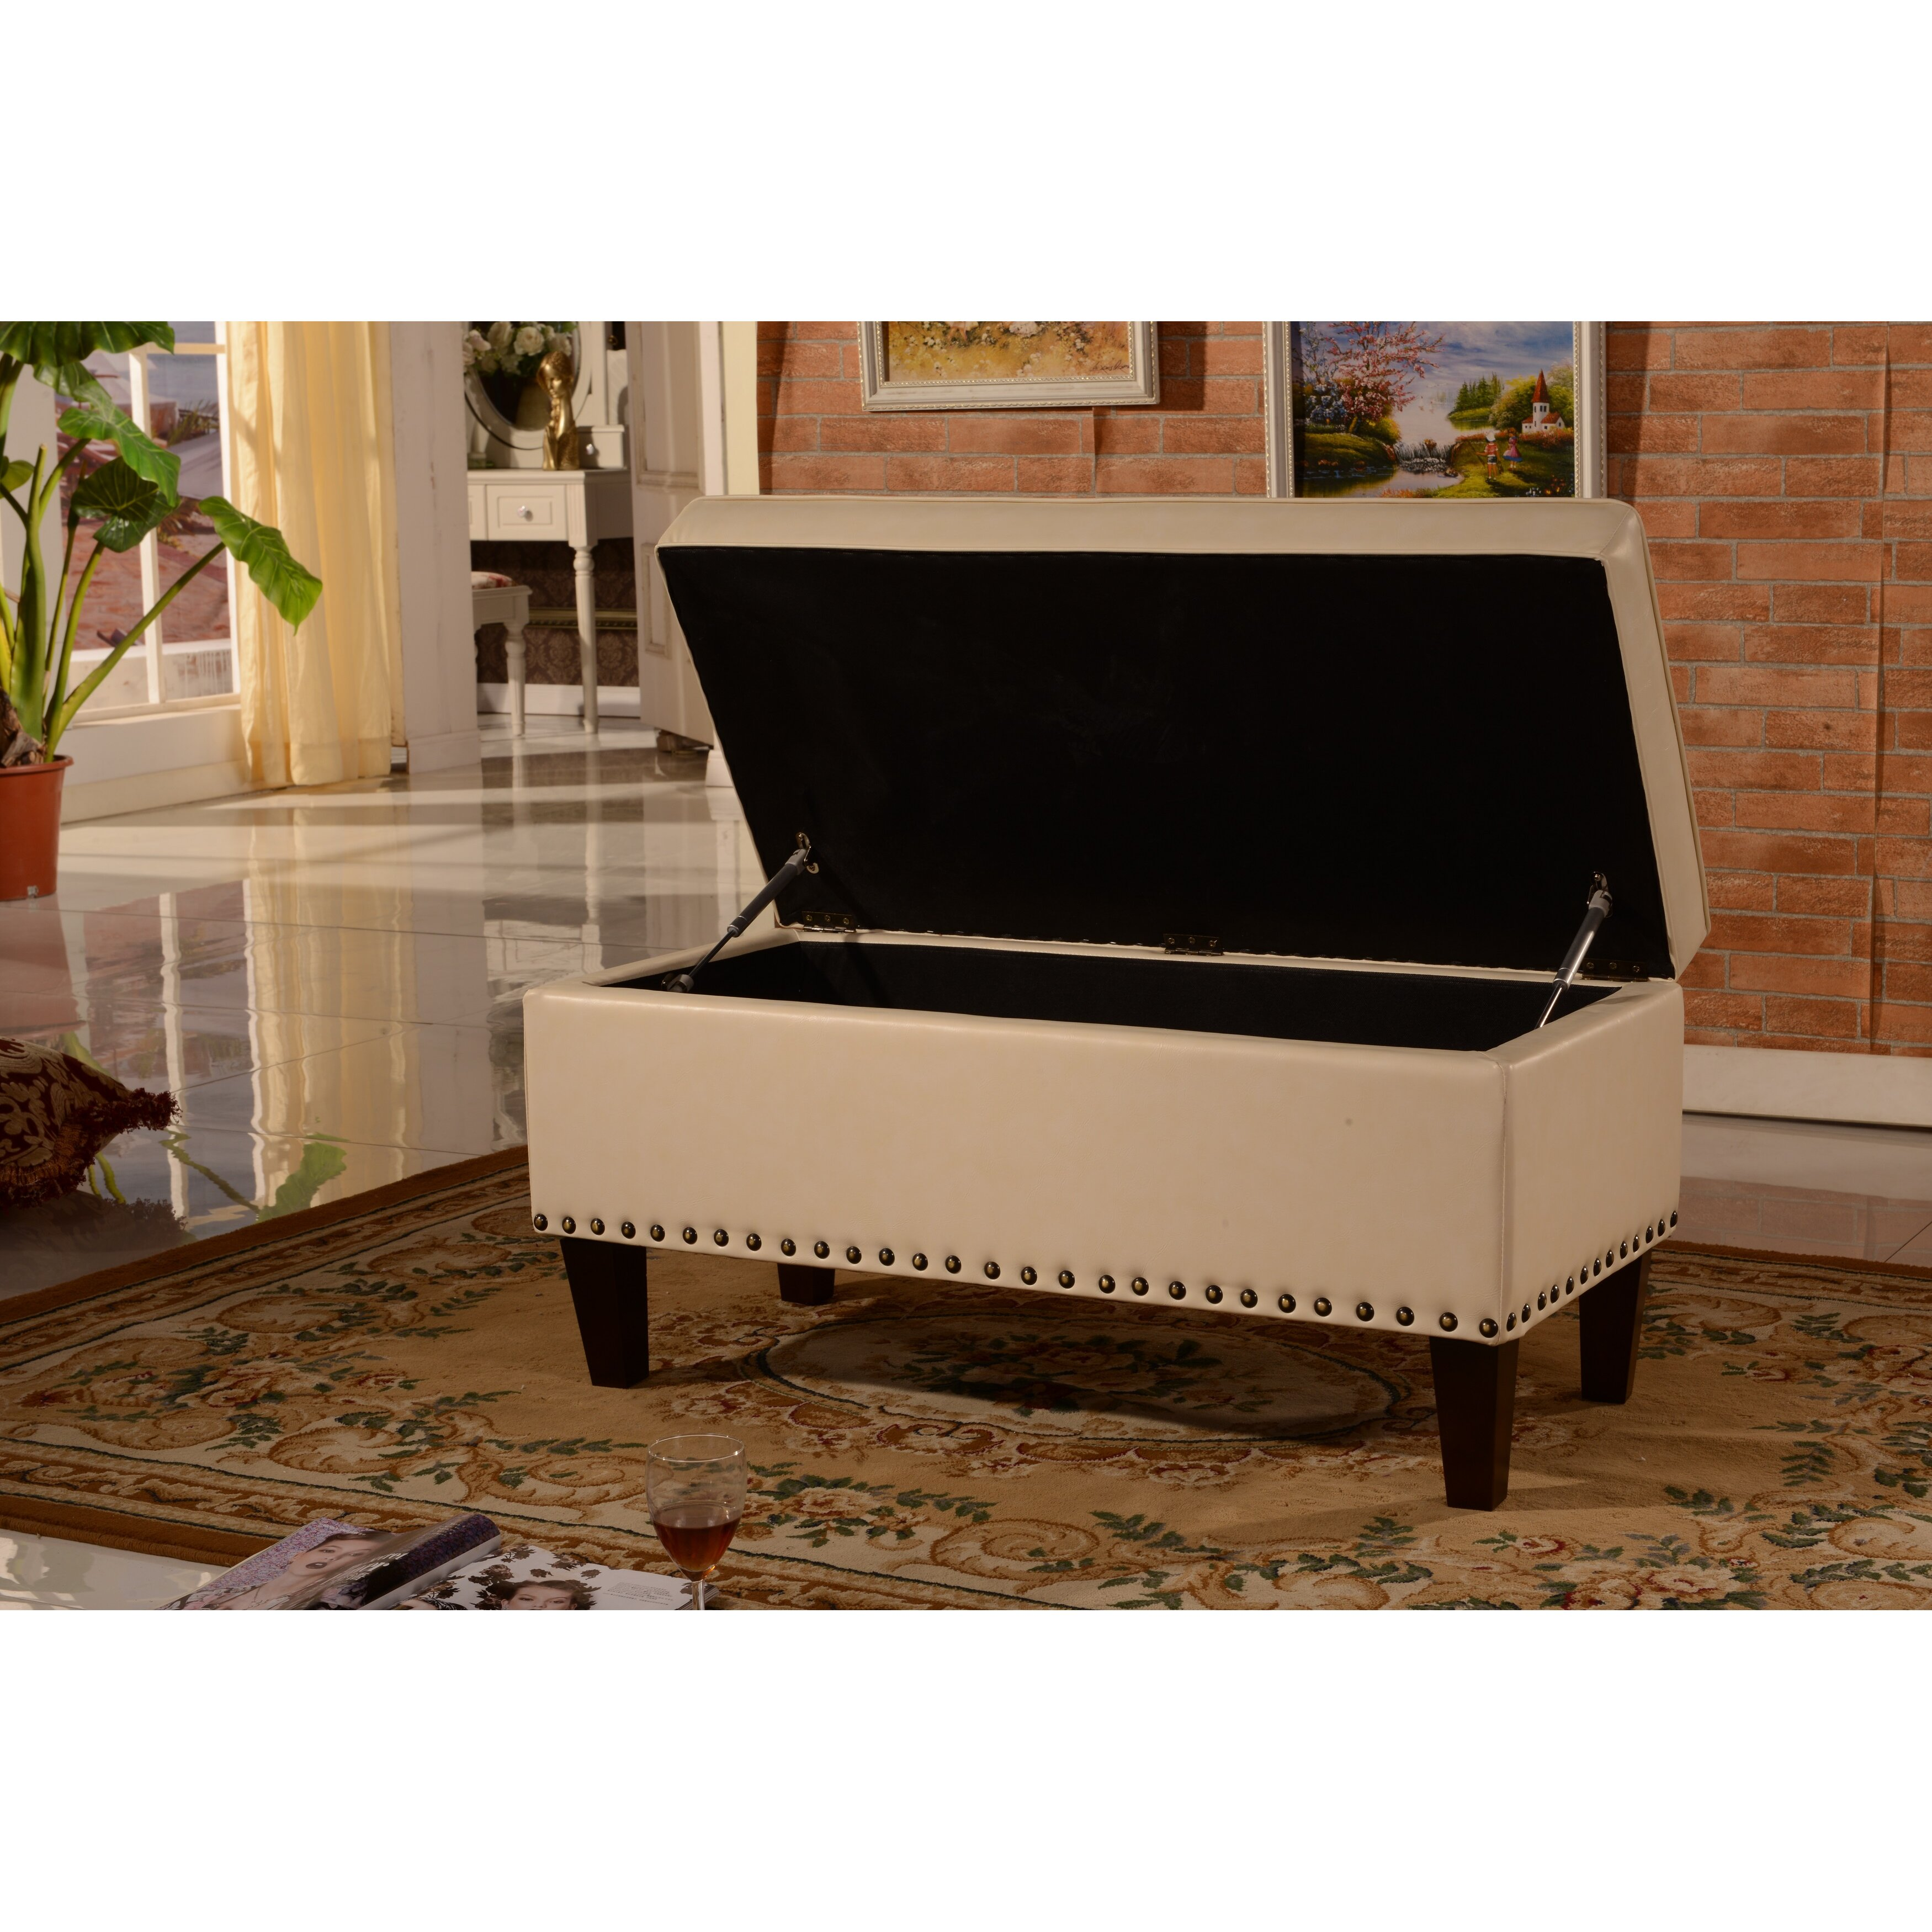 Adecotrading Storage Bedroom Bench Reviews: NOYA USA Storage Bedroom Bench & Reviews